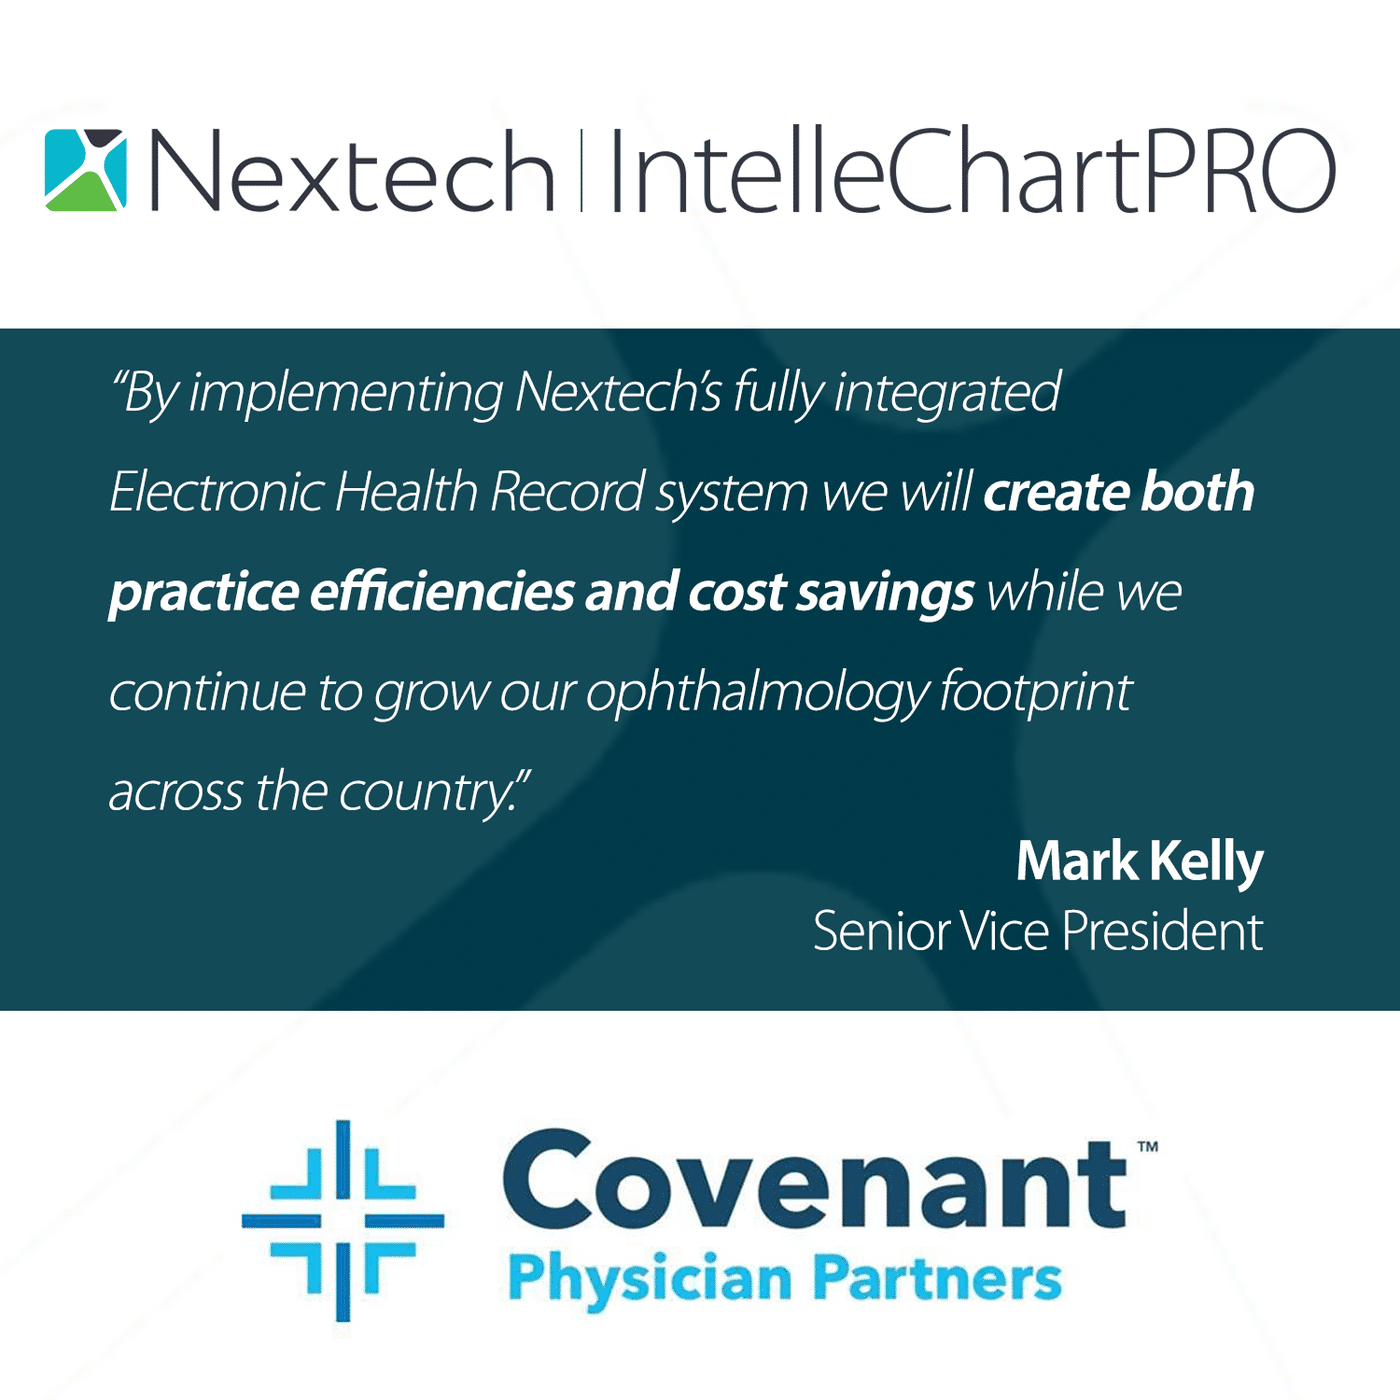 Covenant Physician Partners Selects Nextech's Ophthalmology EHR and ASC Solution